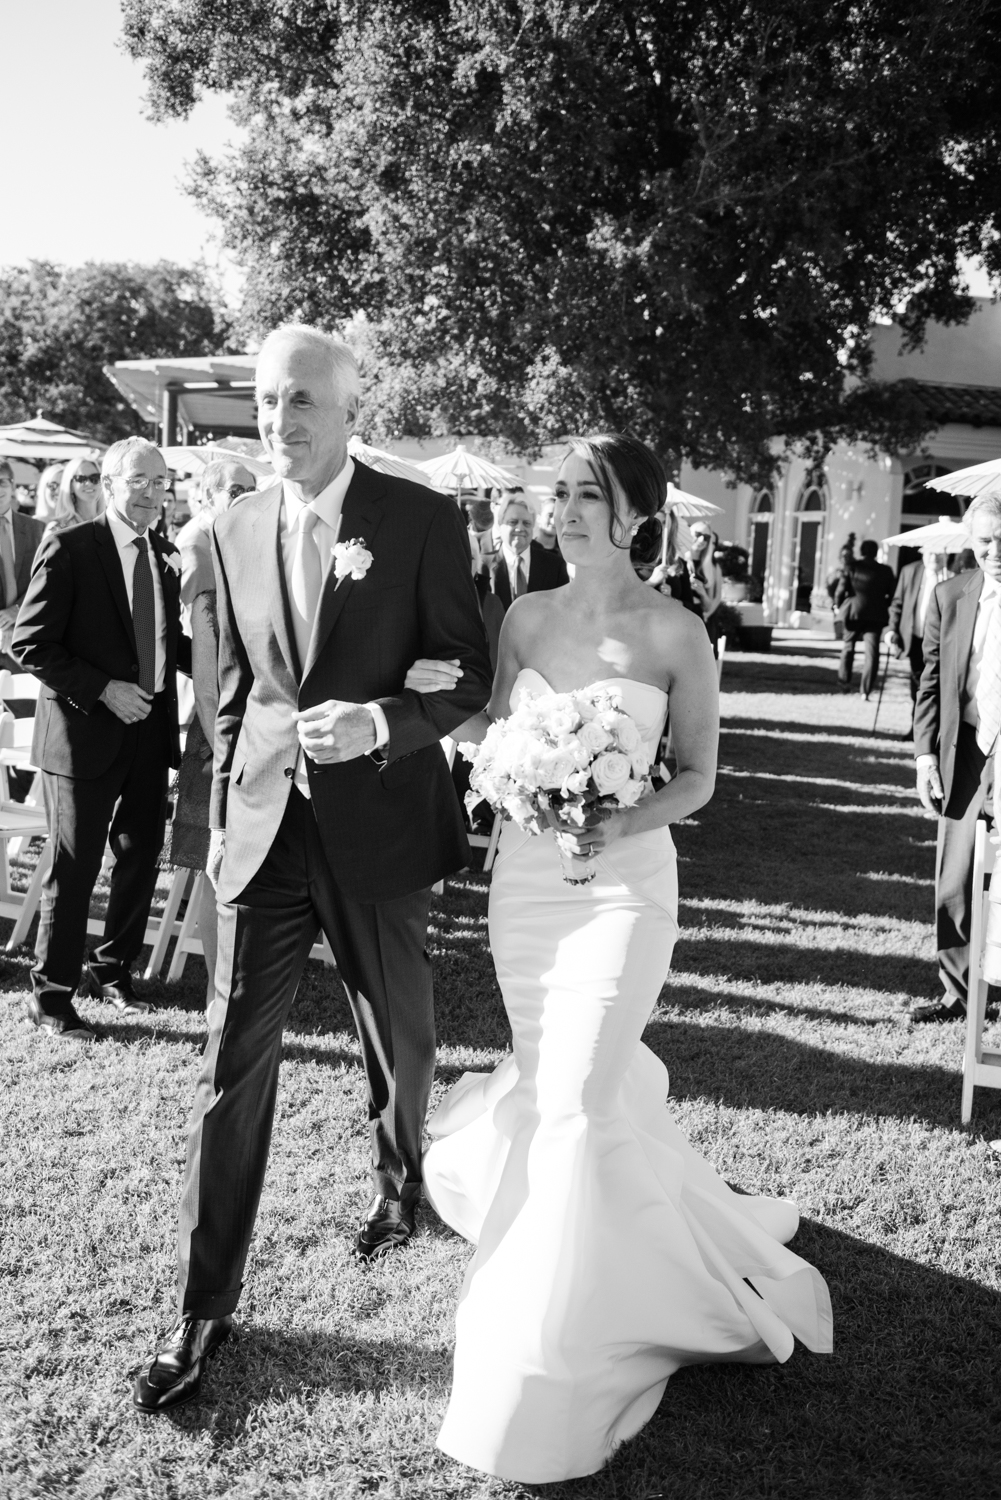 Caroline's father walks her down the aisle during the outdoor ceremony to give her away; photo by Sylvie Gil